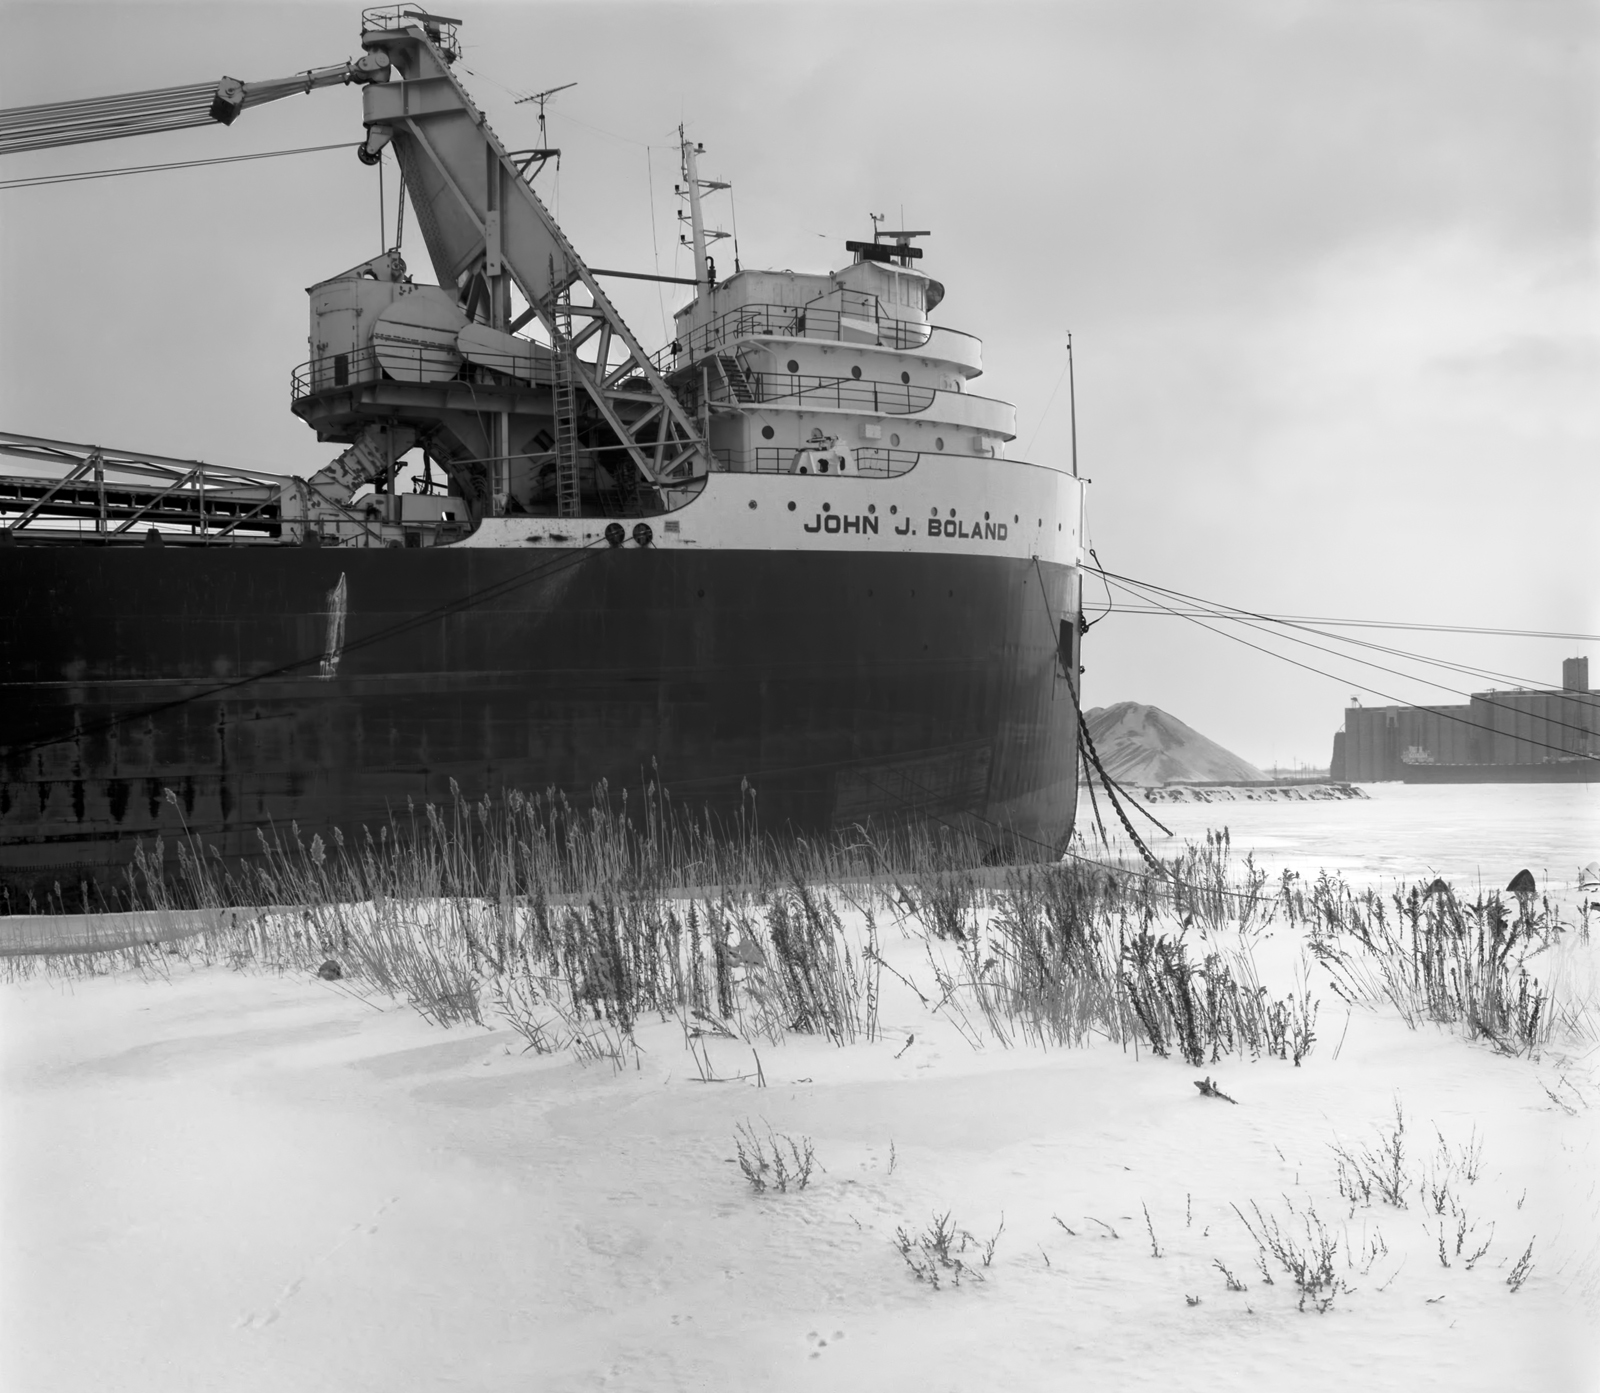 John J. Boland, American Steam Ship Lines, in Winter Layup, South Chicago, Illinois, 1982